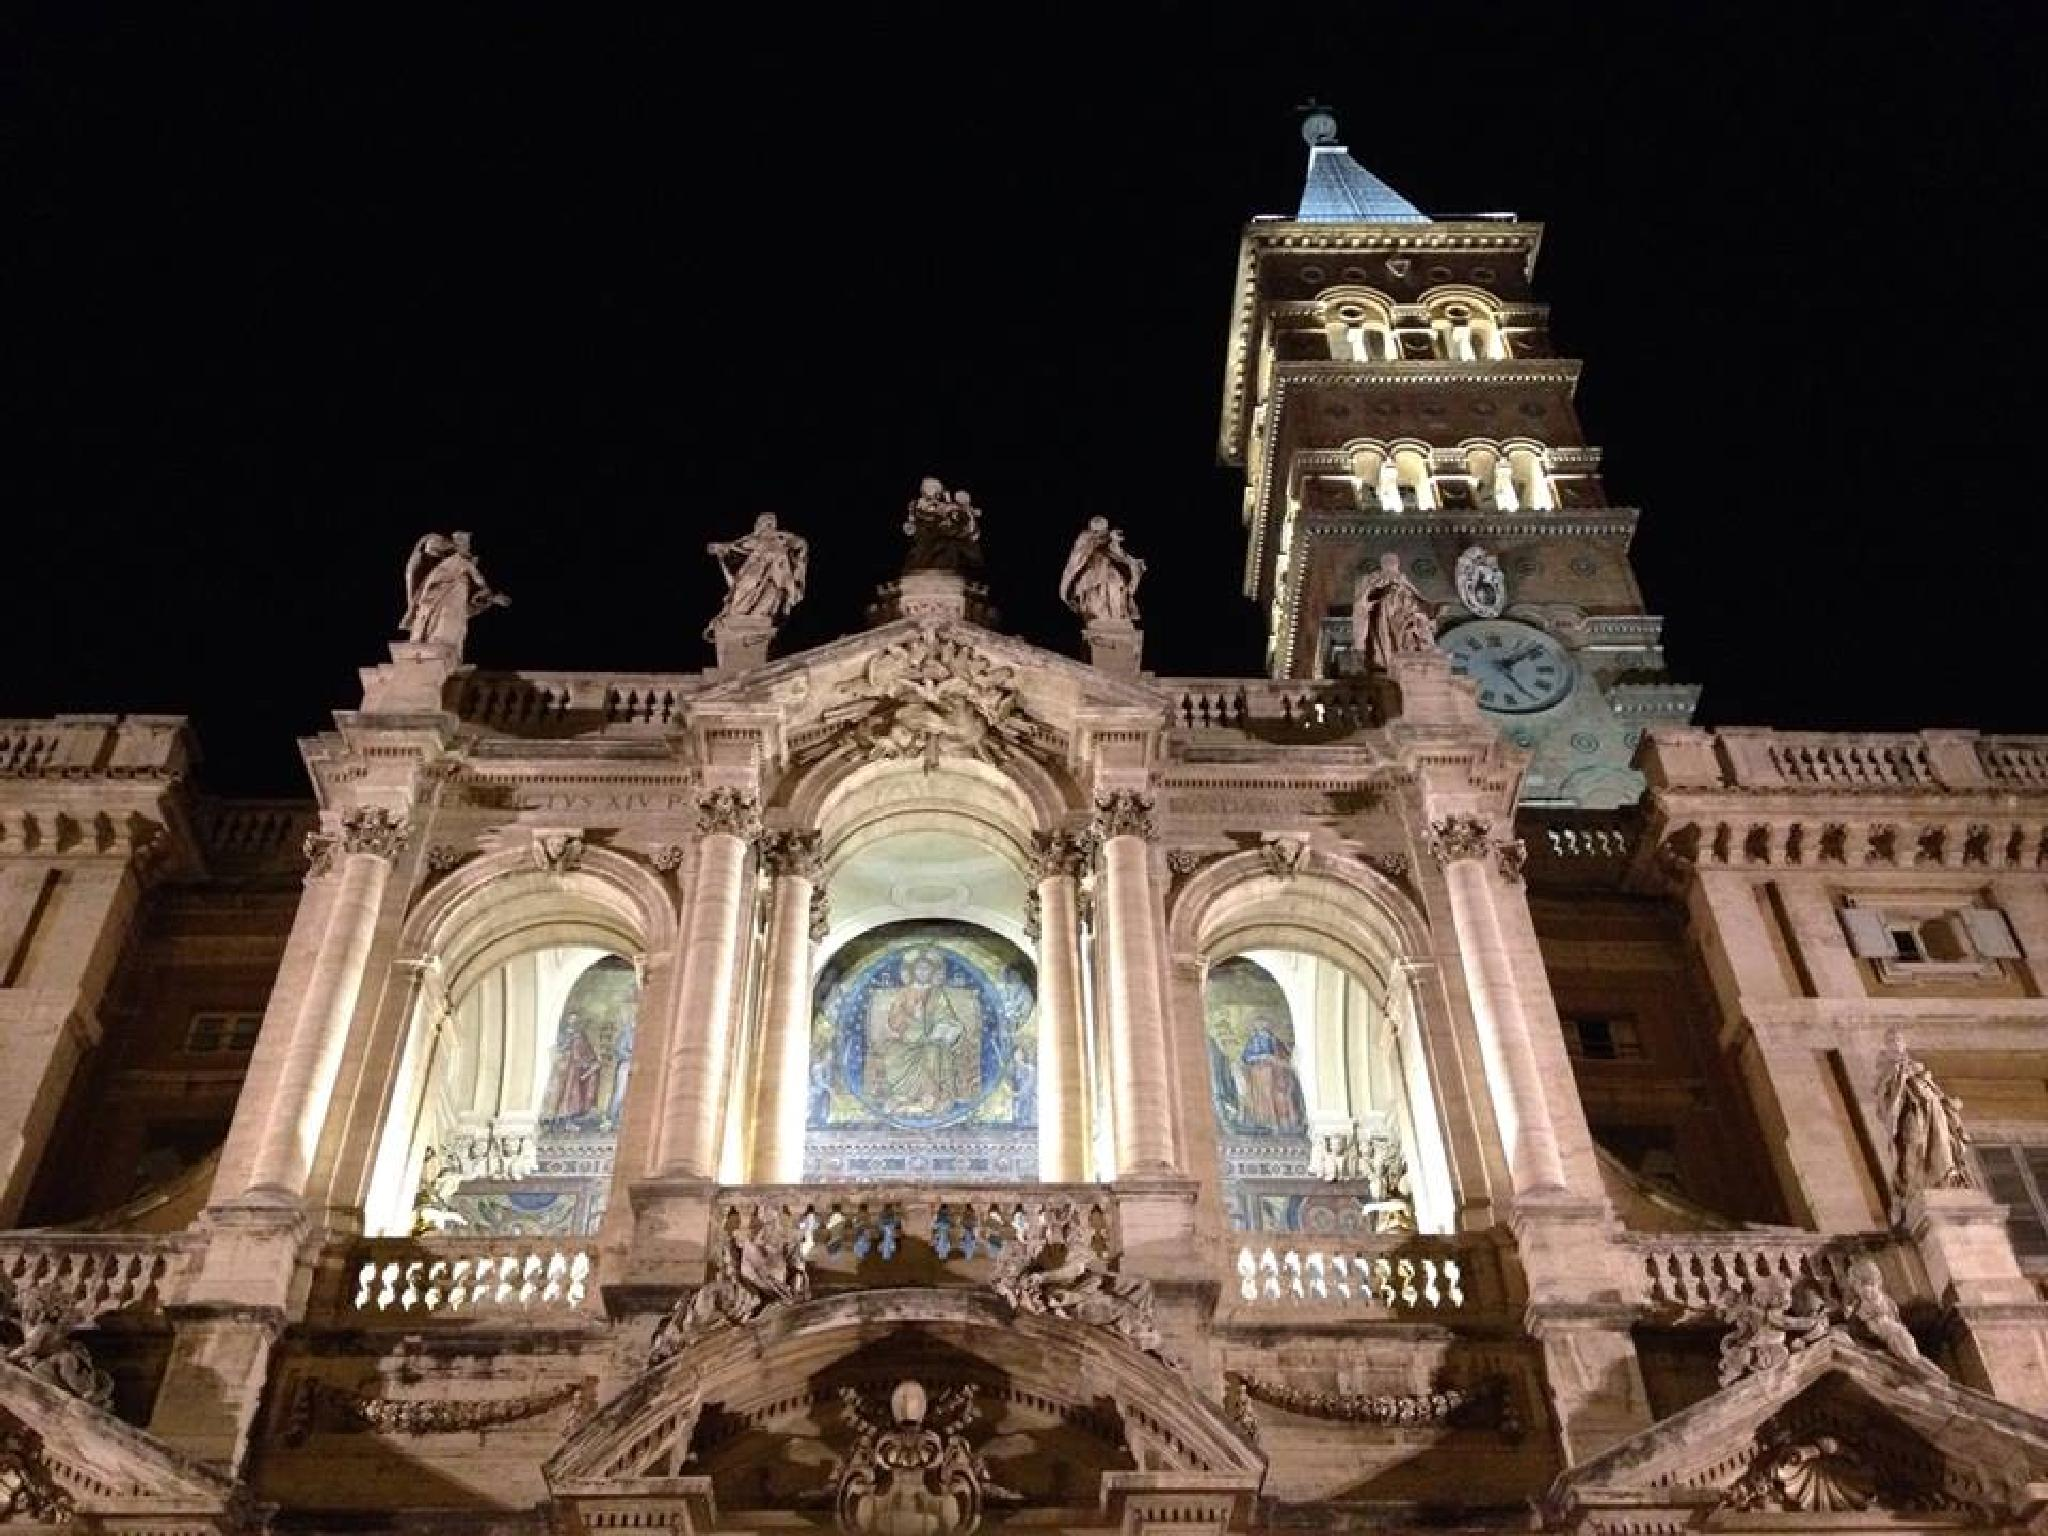 The basilica at night by grossiroma